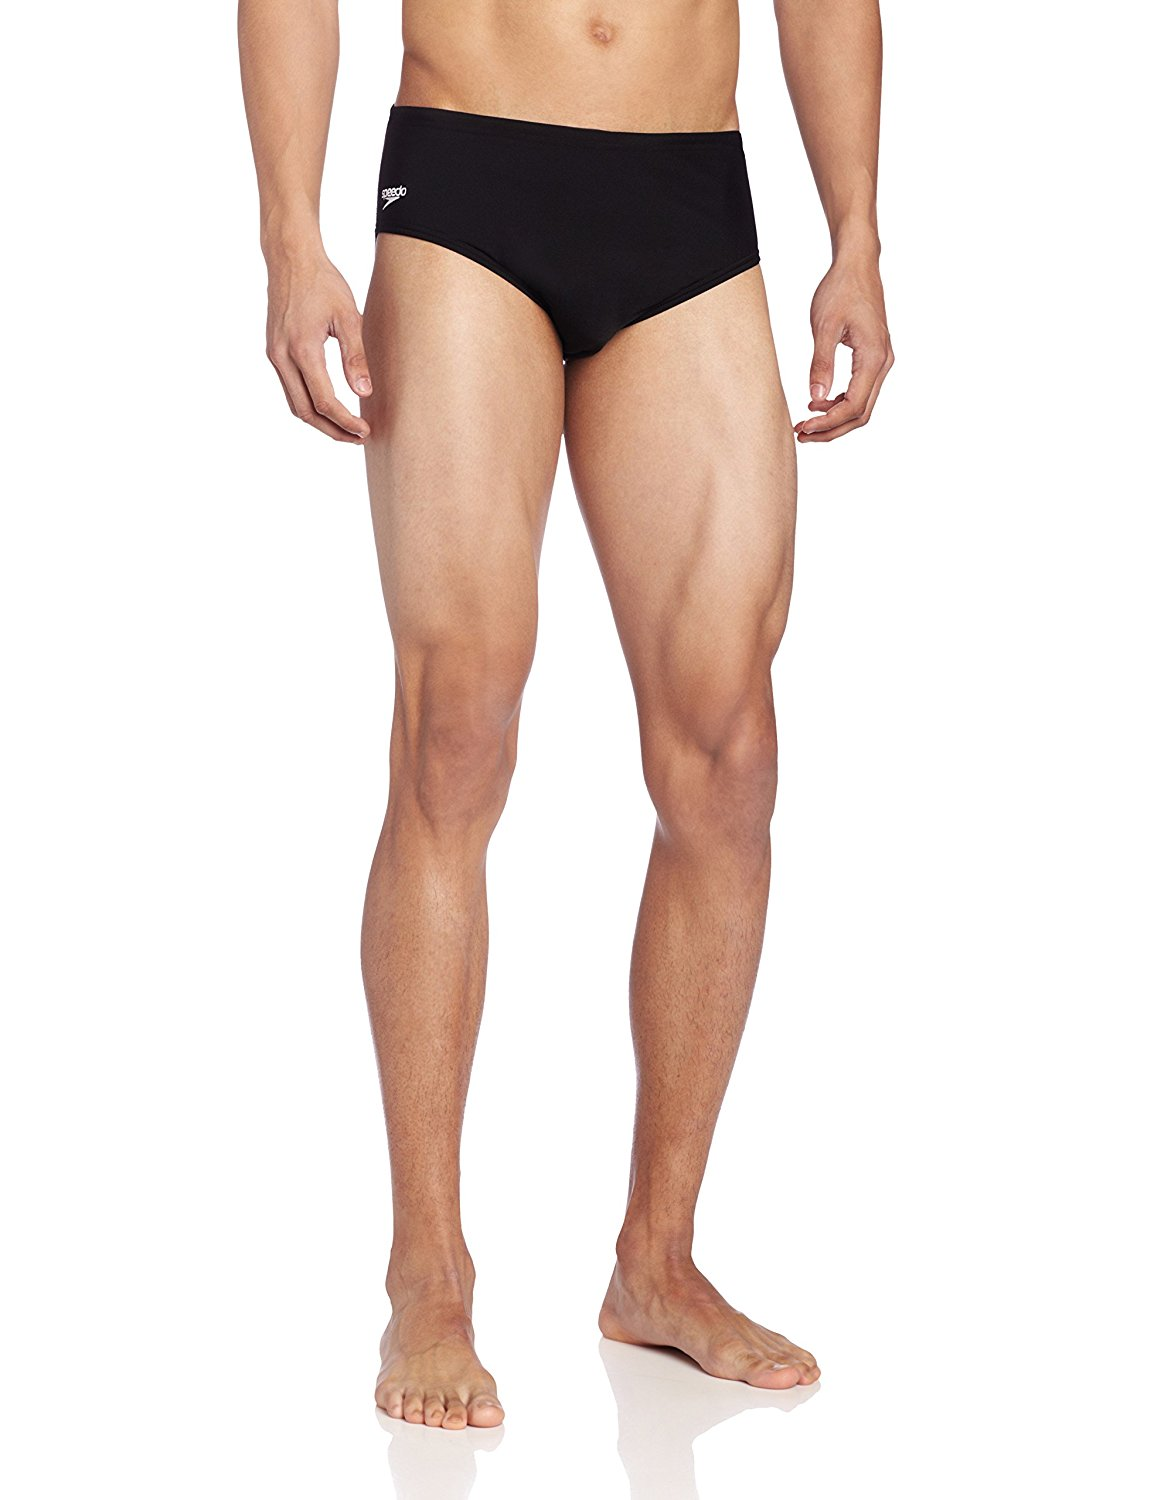 Speedo Men's Endurance+ Solid Brief Swimsuit, Available in 3 Colors and Multiple Sizes